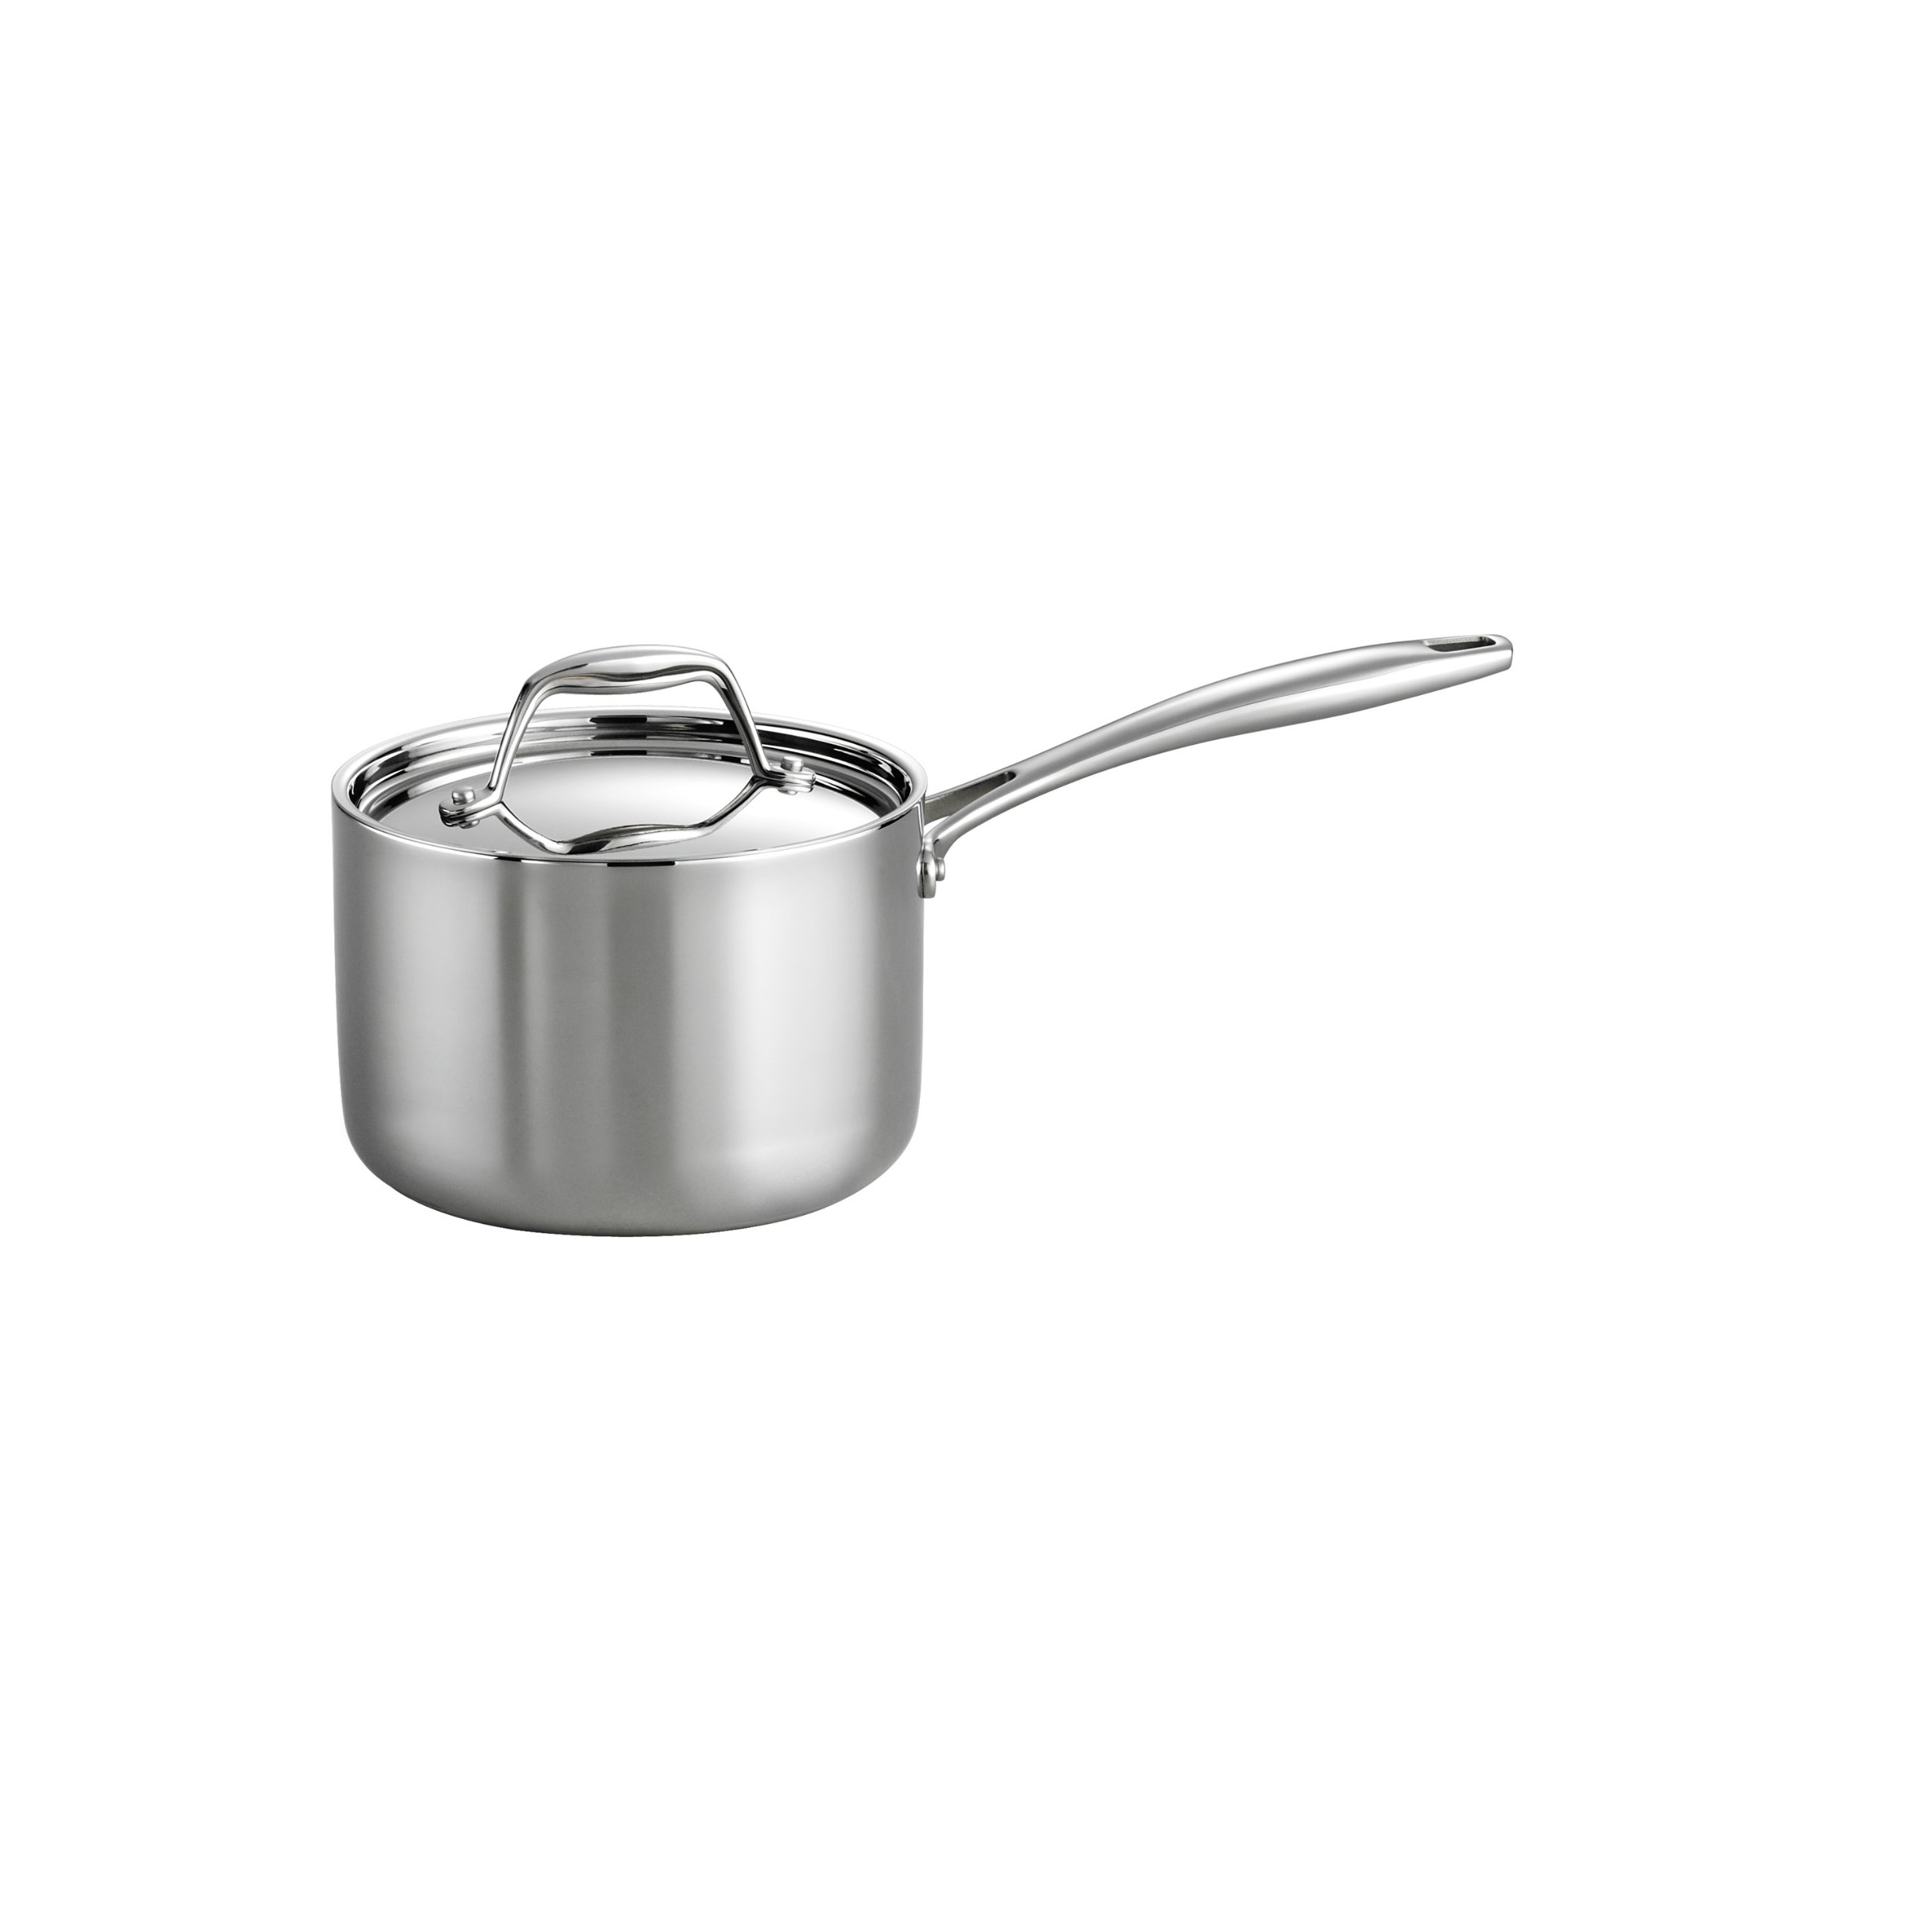 Tramontina 80116/022DS Gourmet Stainless Steel Induction-Ready Tri-Ply Clad Covered Sauce Pan, 2-Quart, NSF-Certified, Made in Brazil by Tramontina